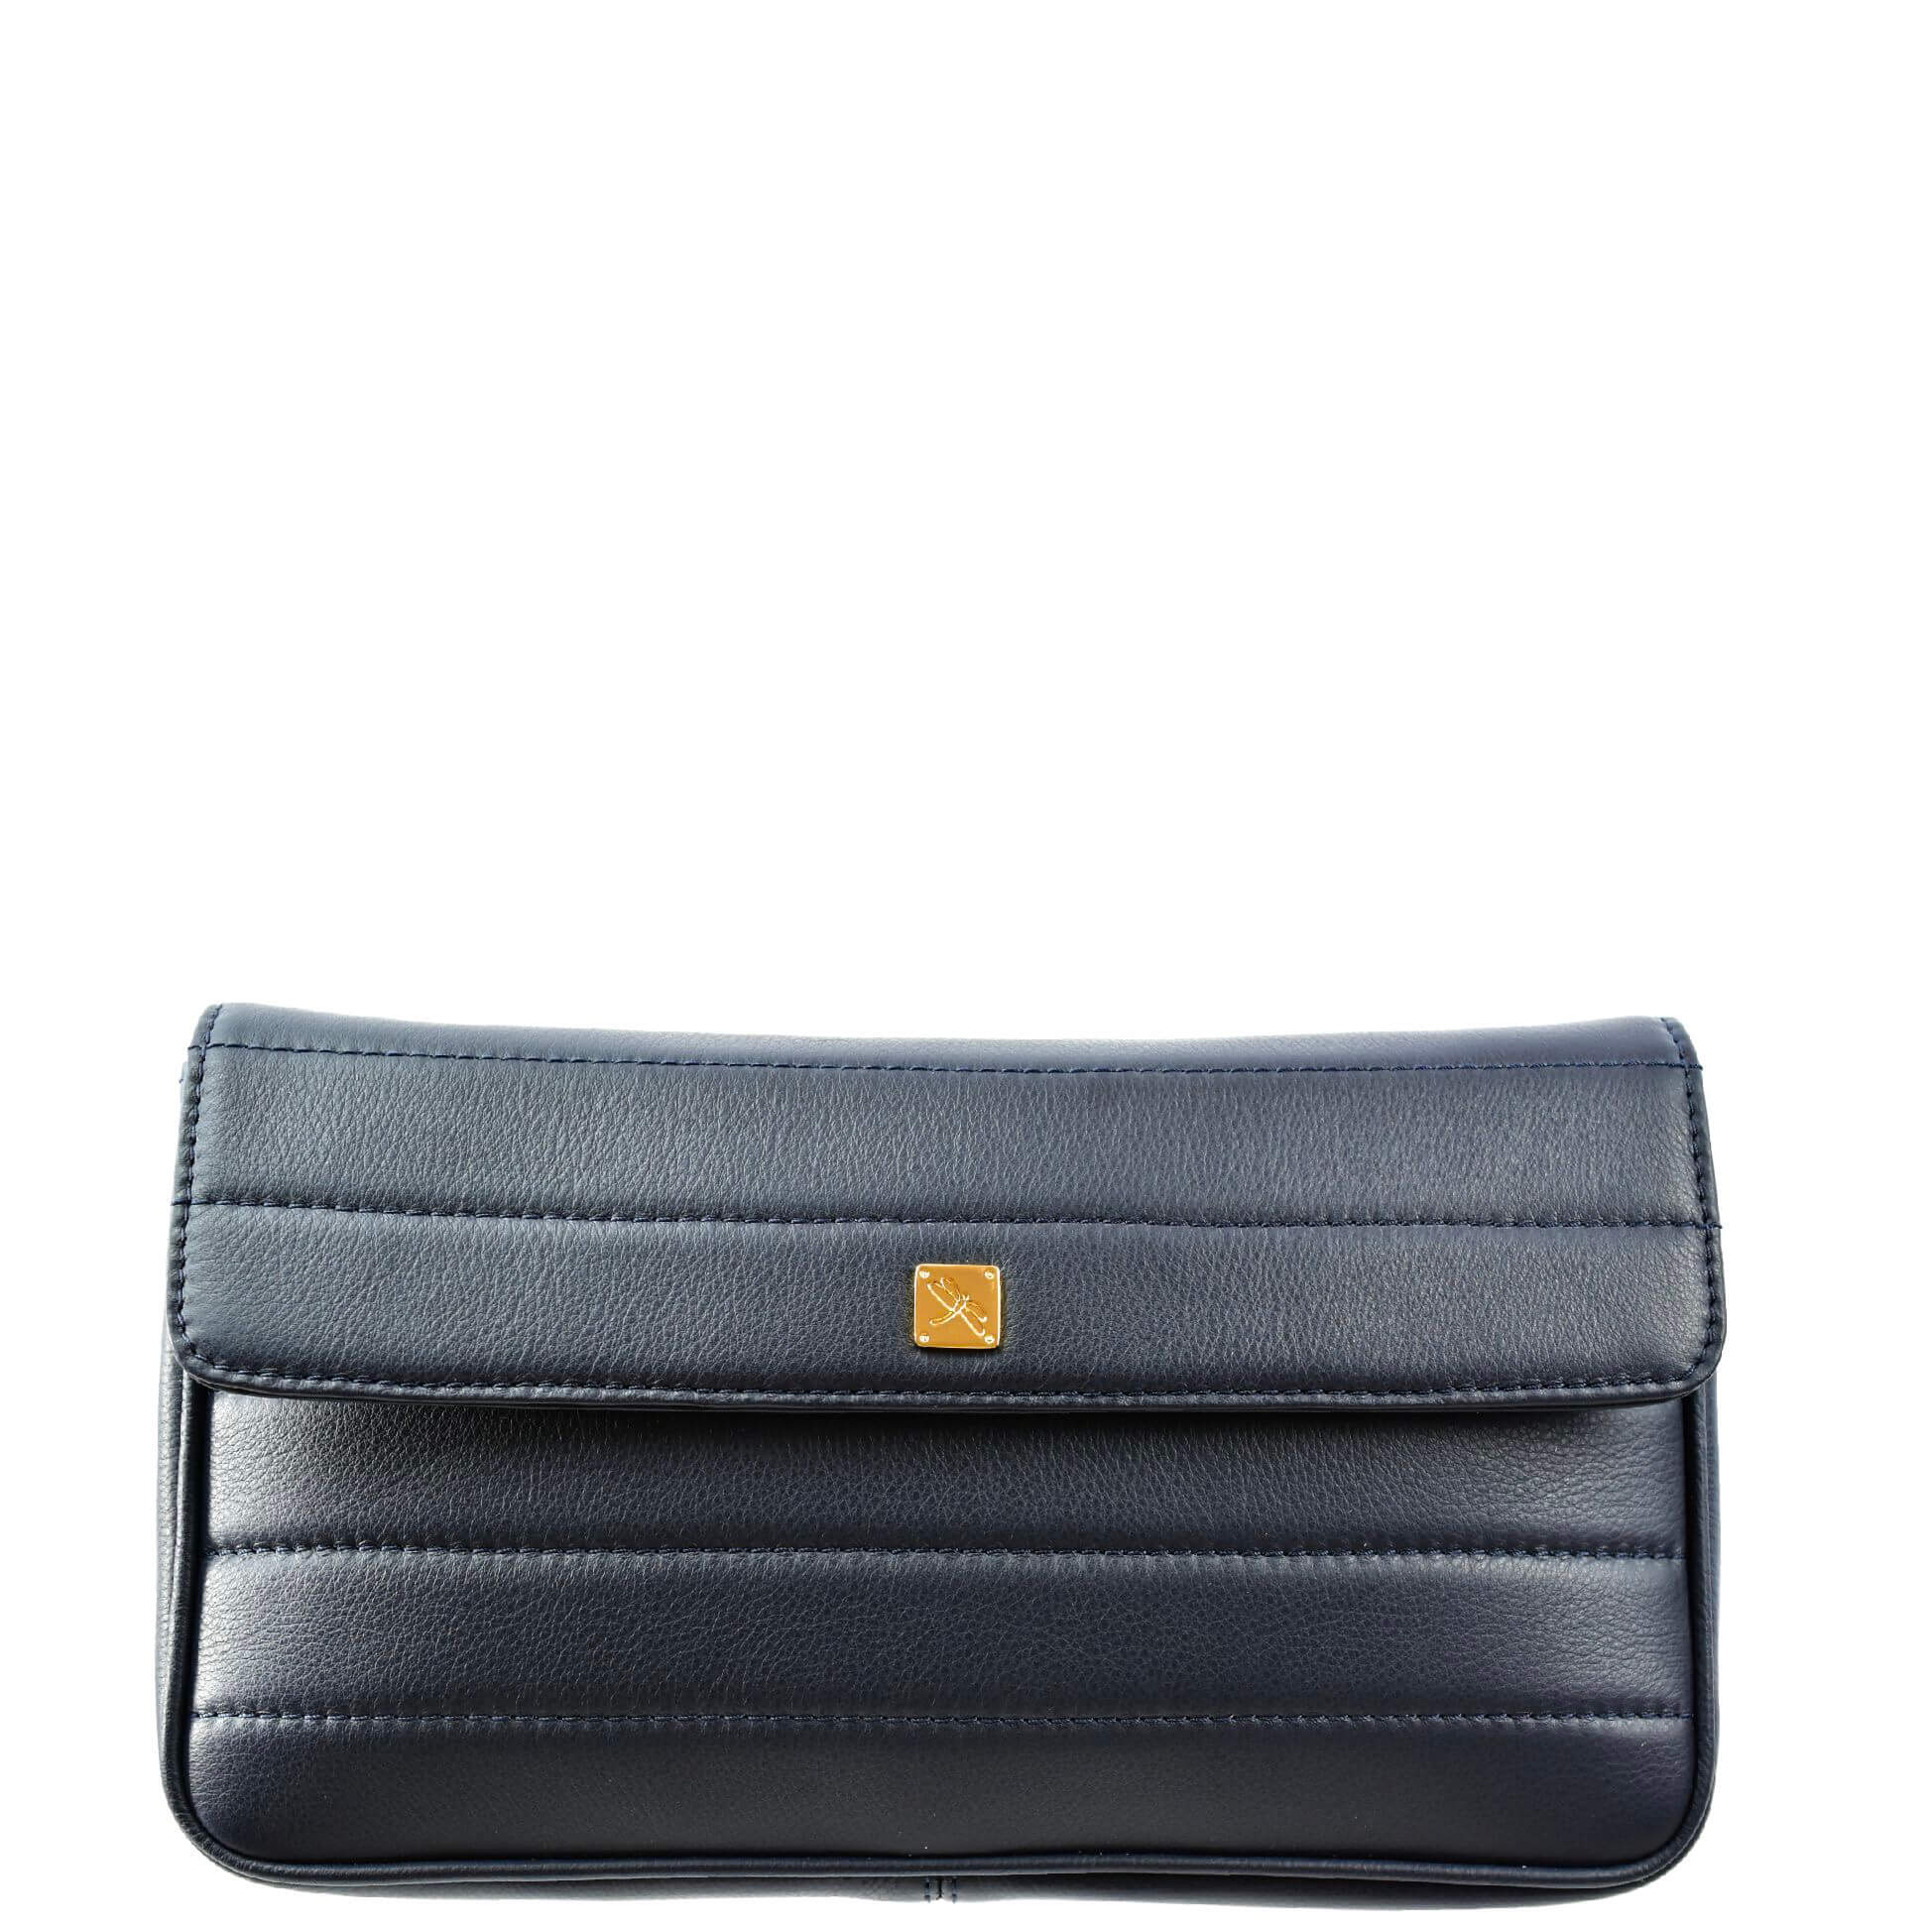 Navy Crossbody with Chain. Viena L